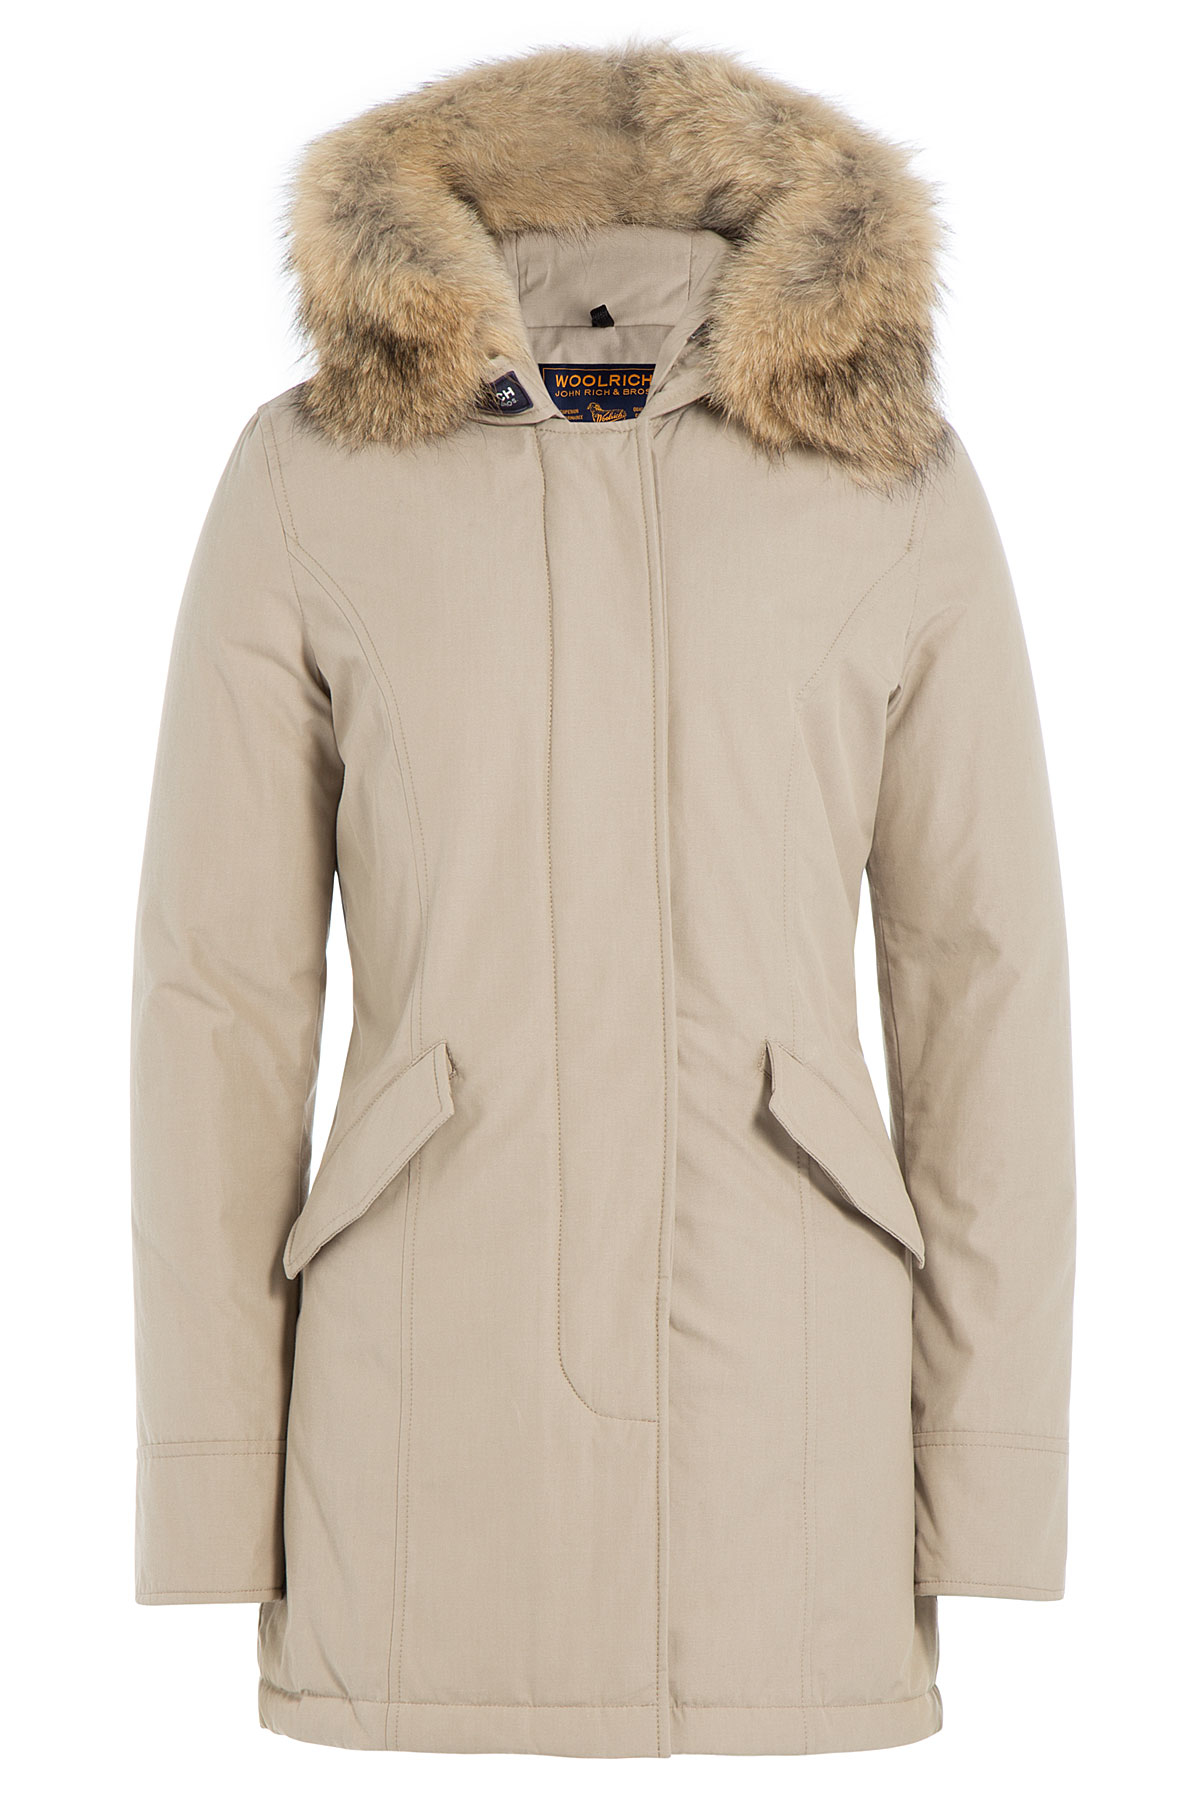 Woolrich Byrd Cloth Arctic Down Parka With Fur Trimmed